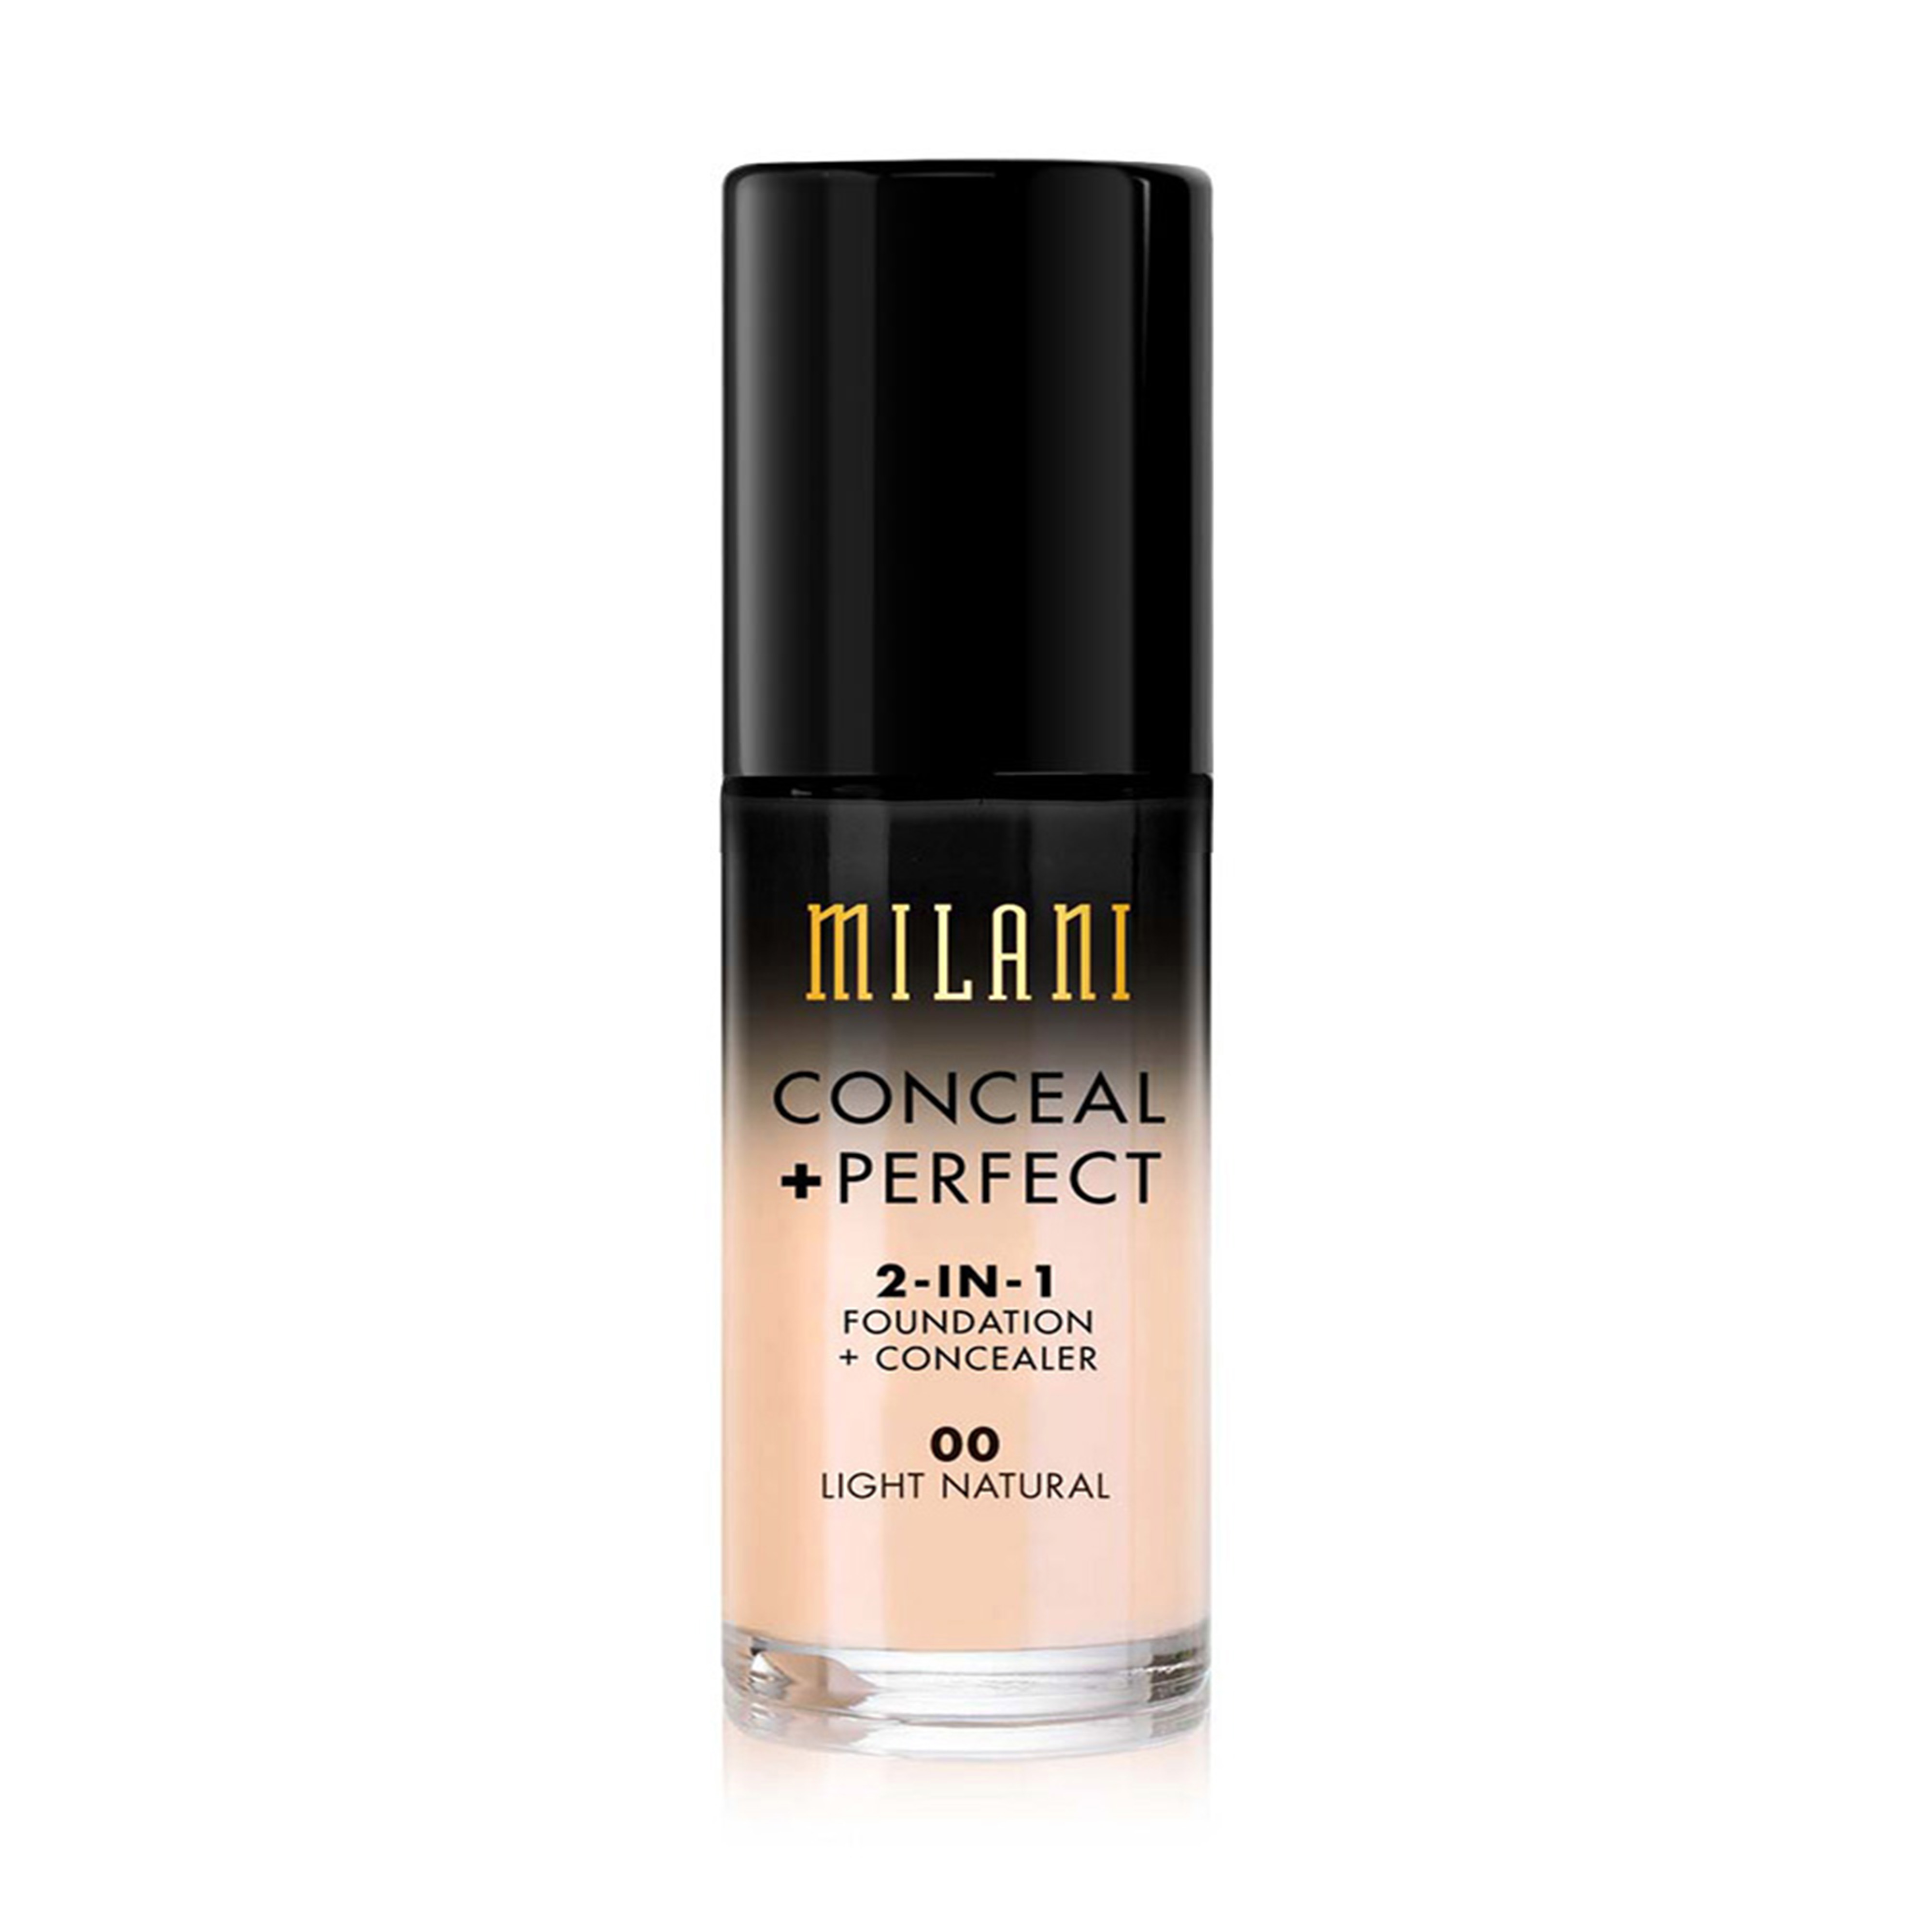 Conceal + Perfect Liquid Foundation